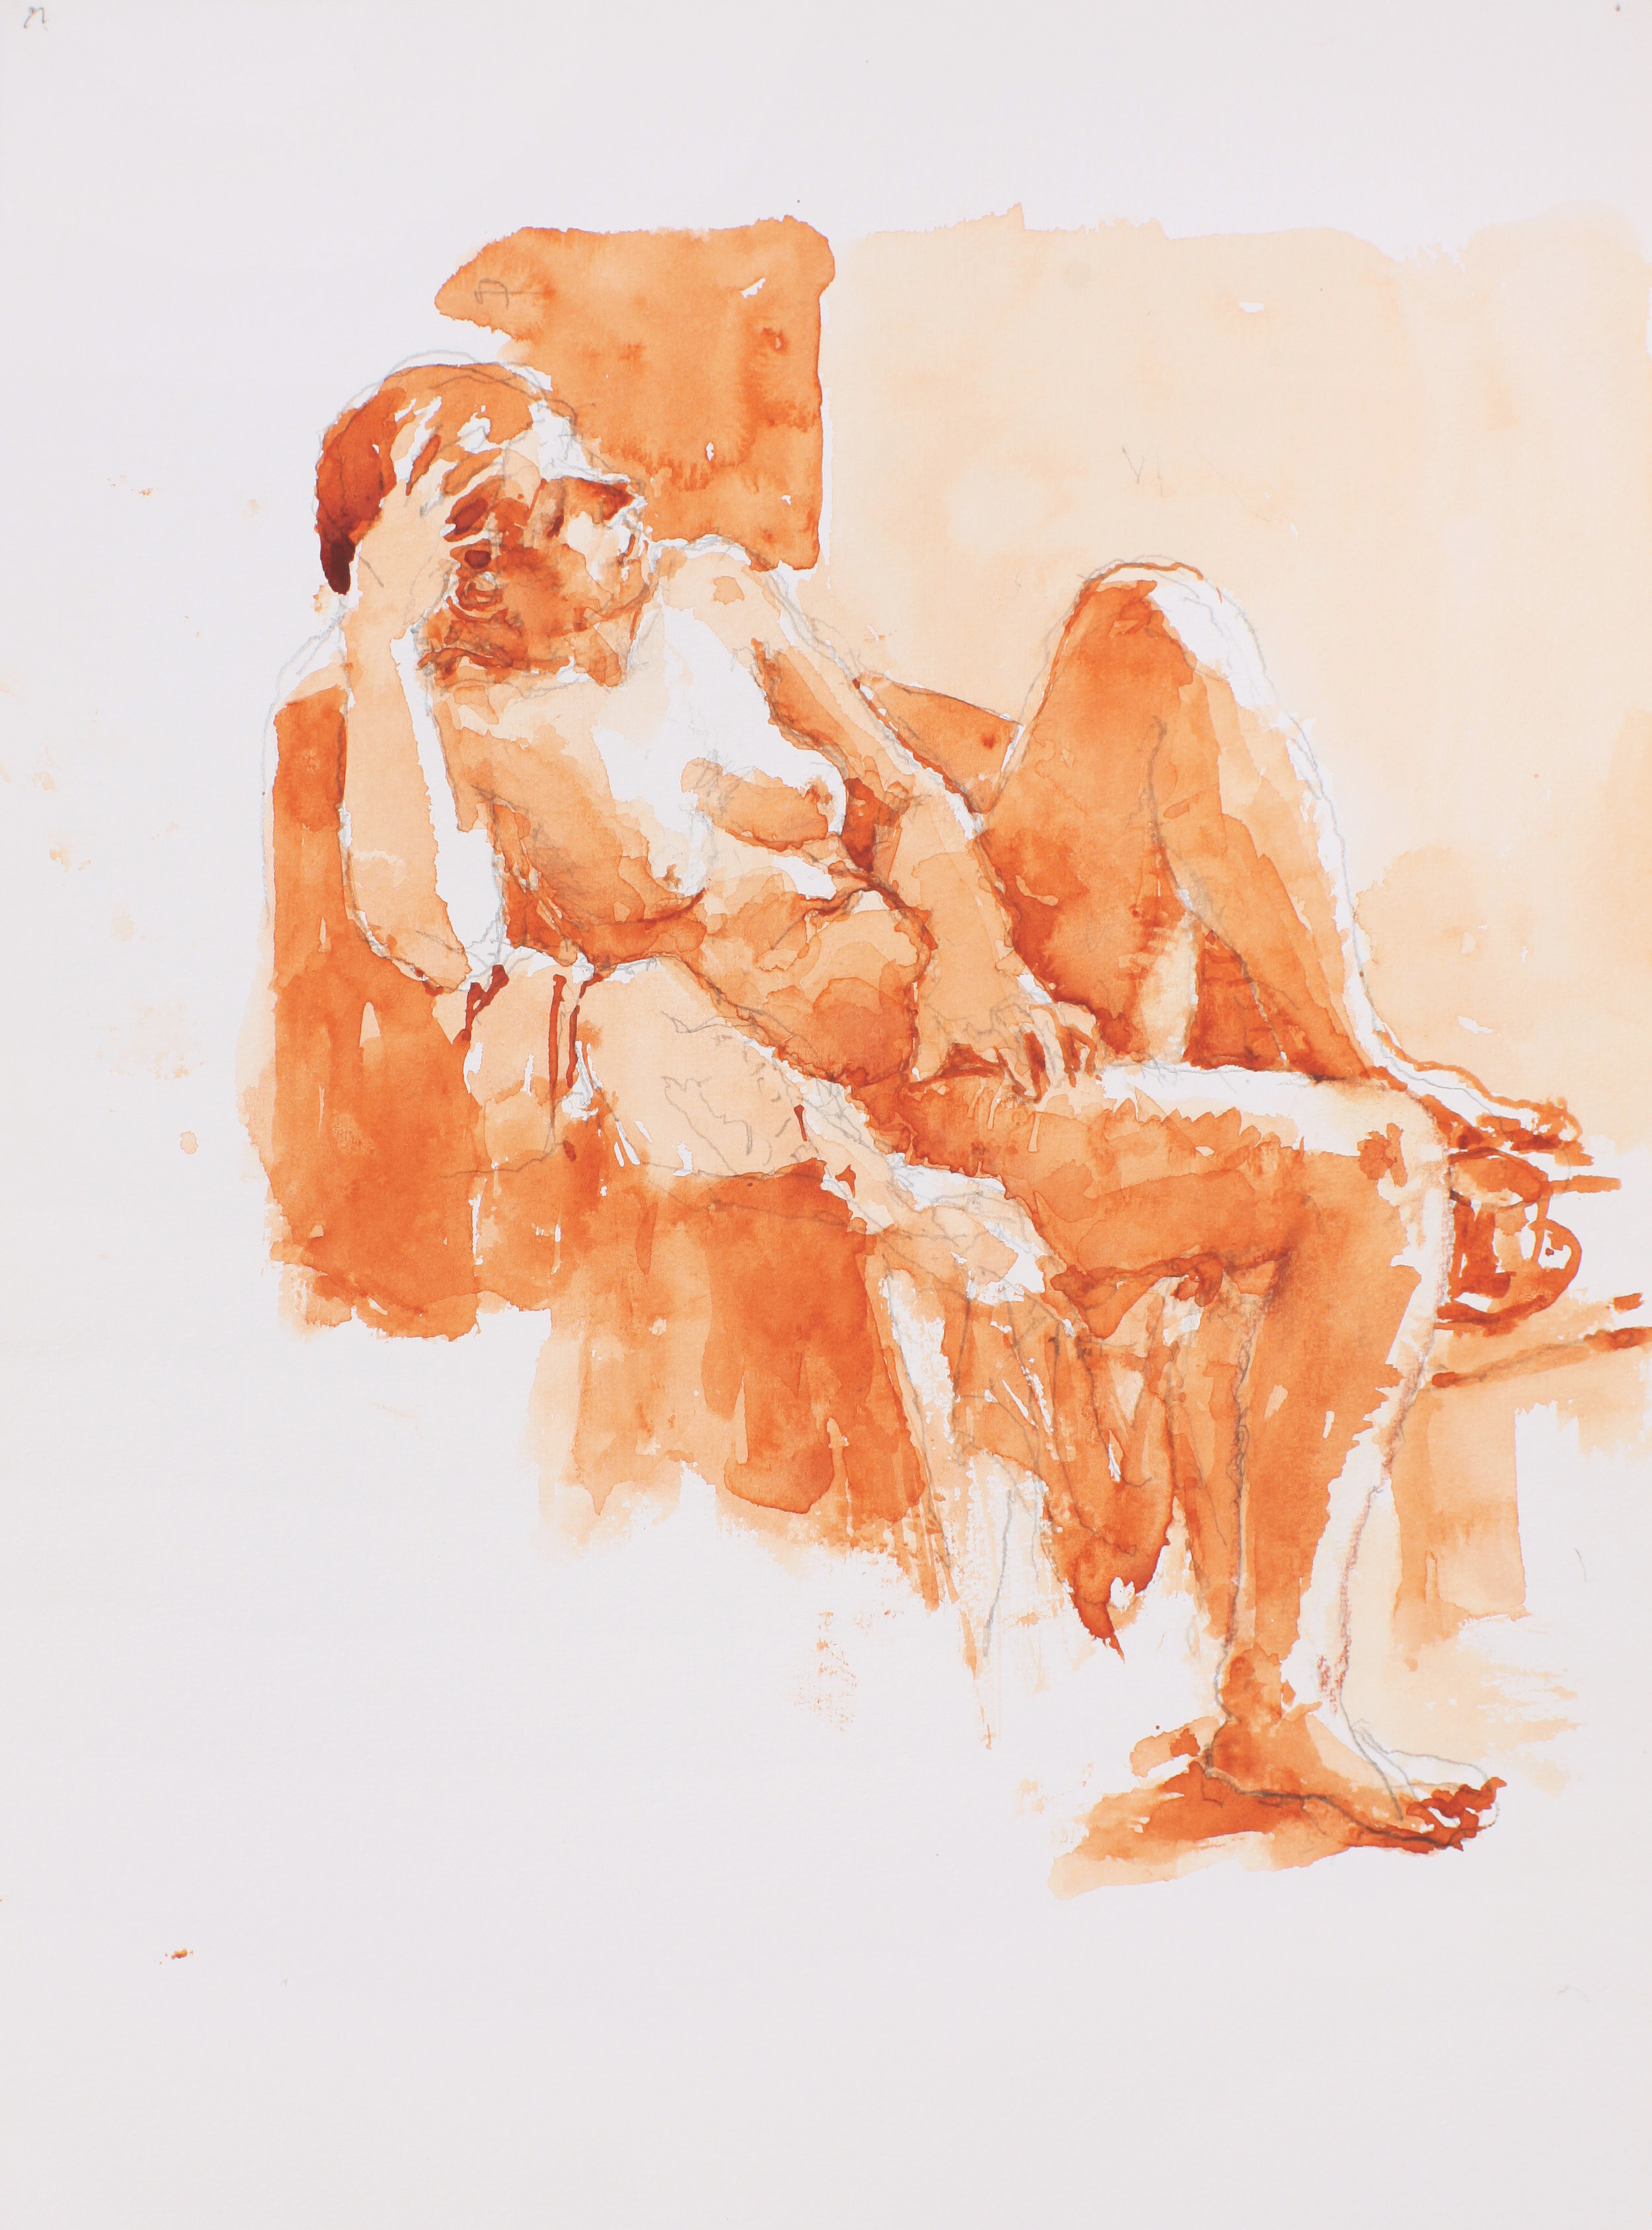 2004_Seated_Nude_in_Contraposto_watercolour_and_pencil_on_paper_15x11in_WPF195.jpg